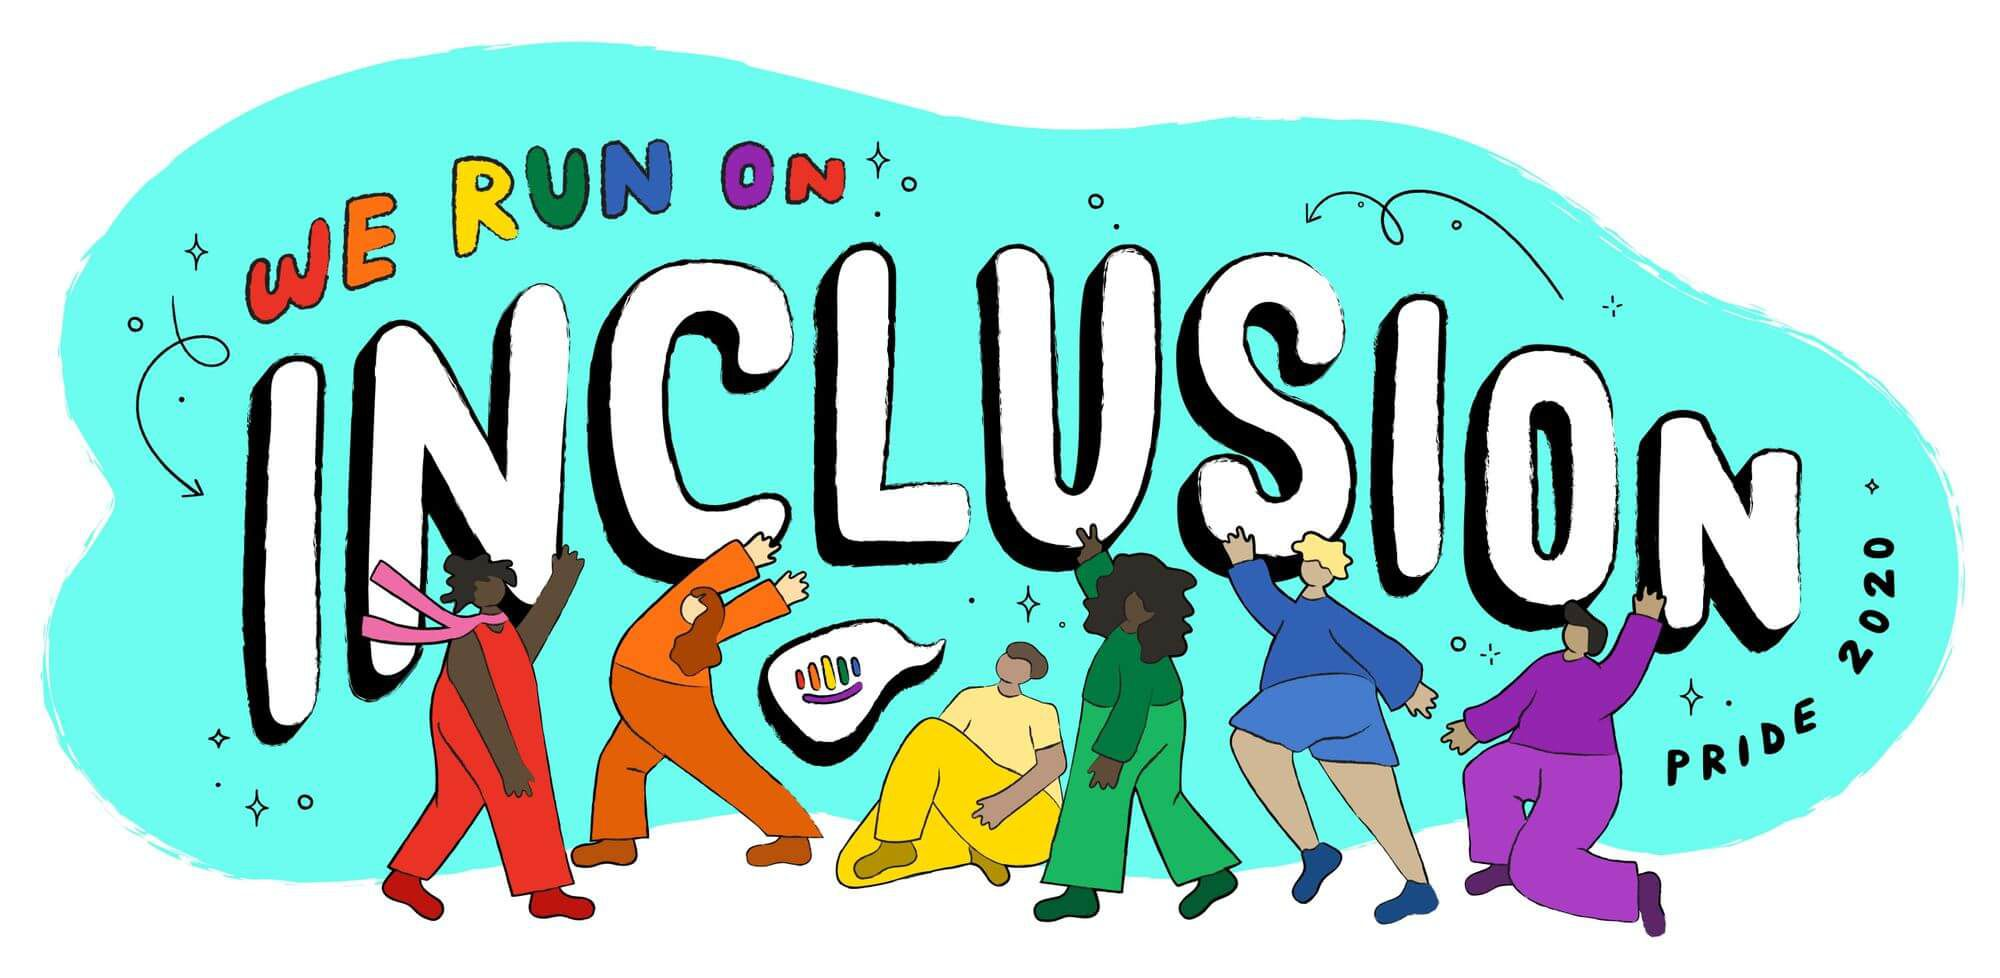 We run on inclusion: Sharing stories and lived experiences